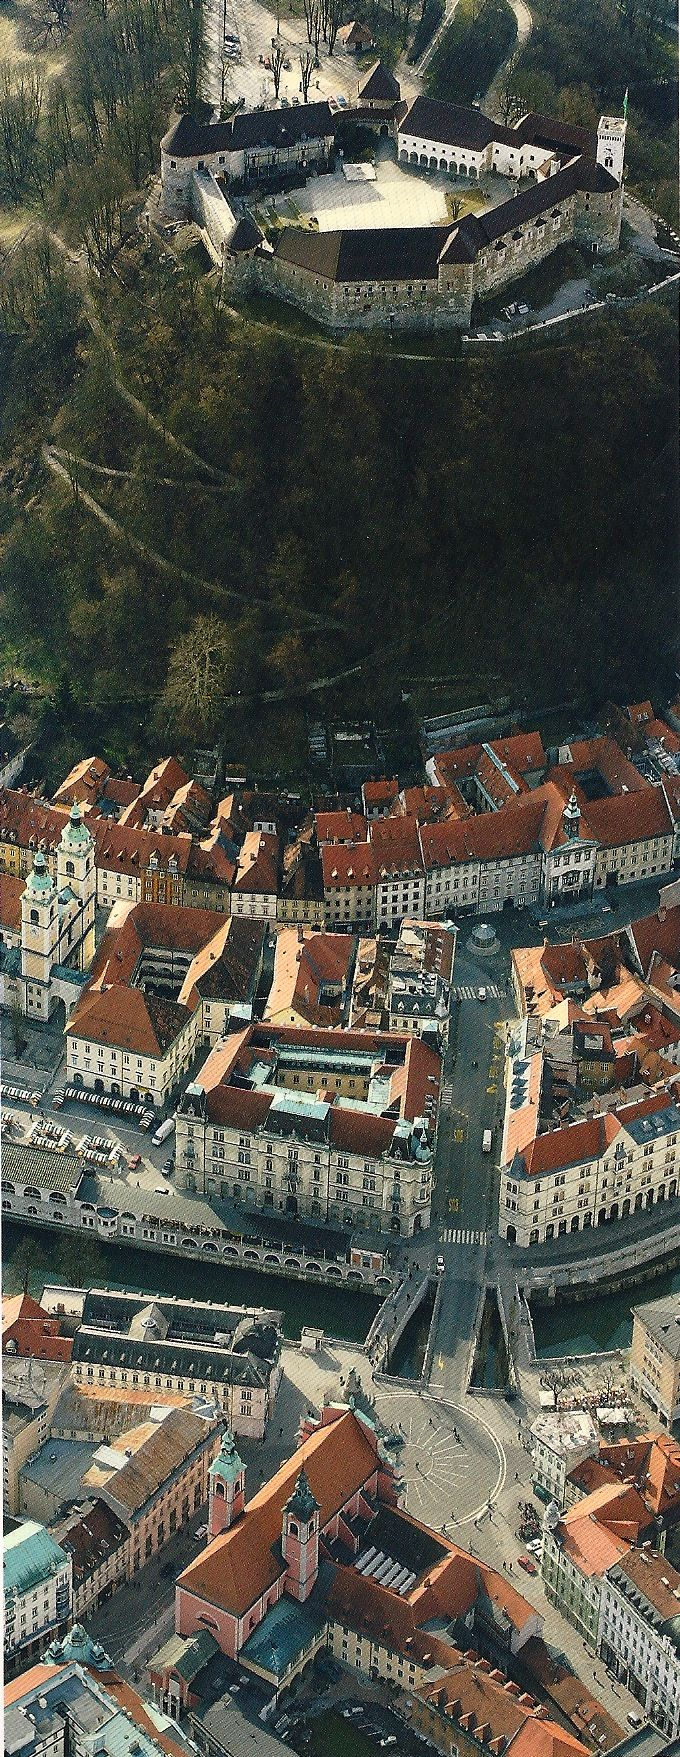 #Ljubljana, Slovenia One of my favorite places in the world!